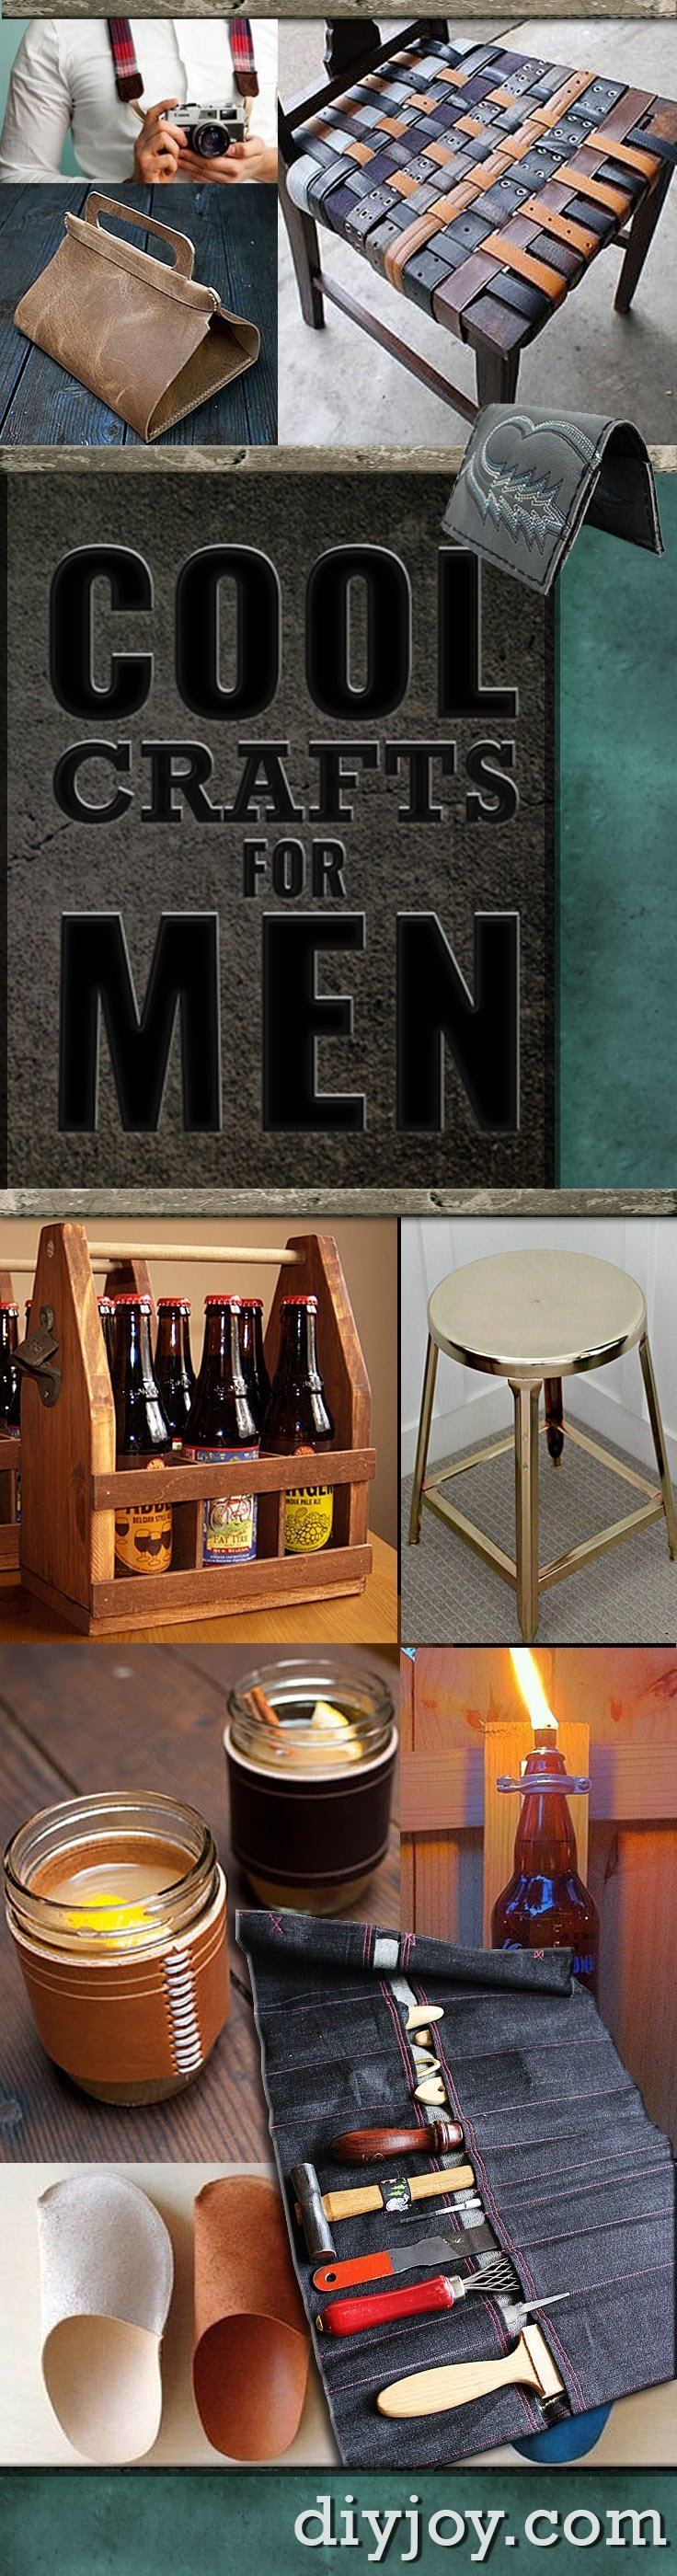 10 Lovely Senior Project Ideas For Guys ridiculously cool diy crafts for men 2020